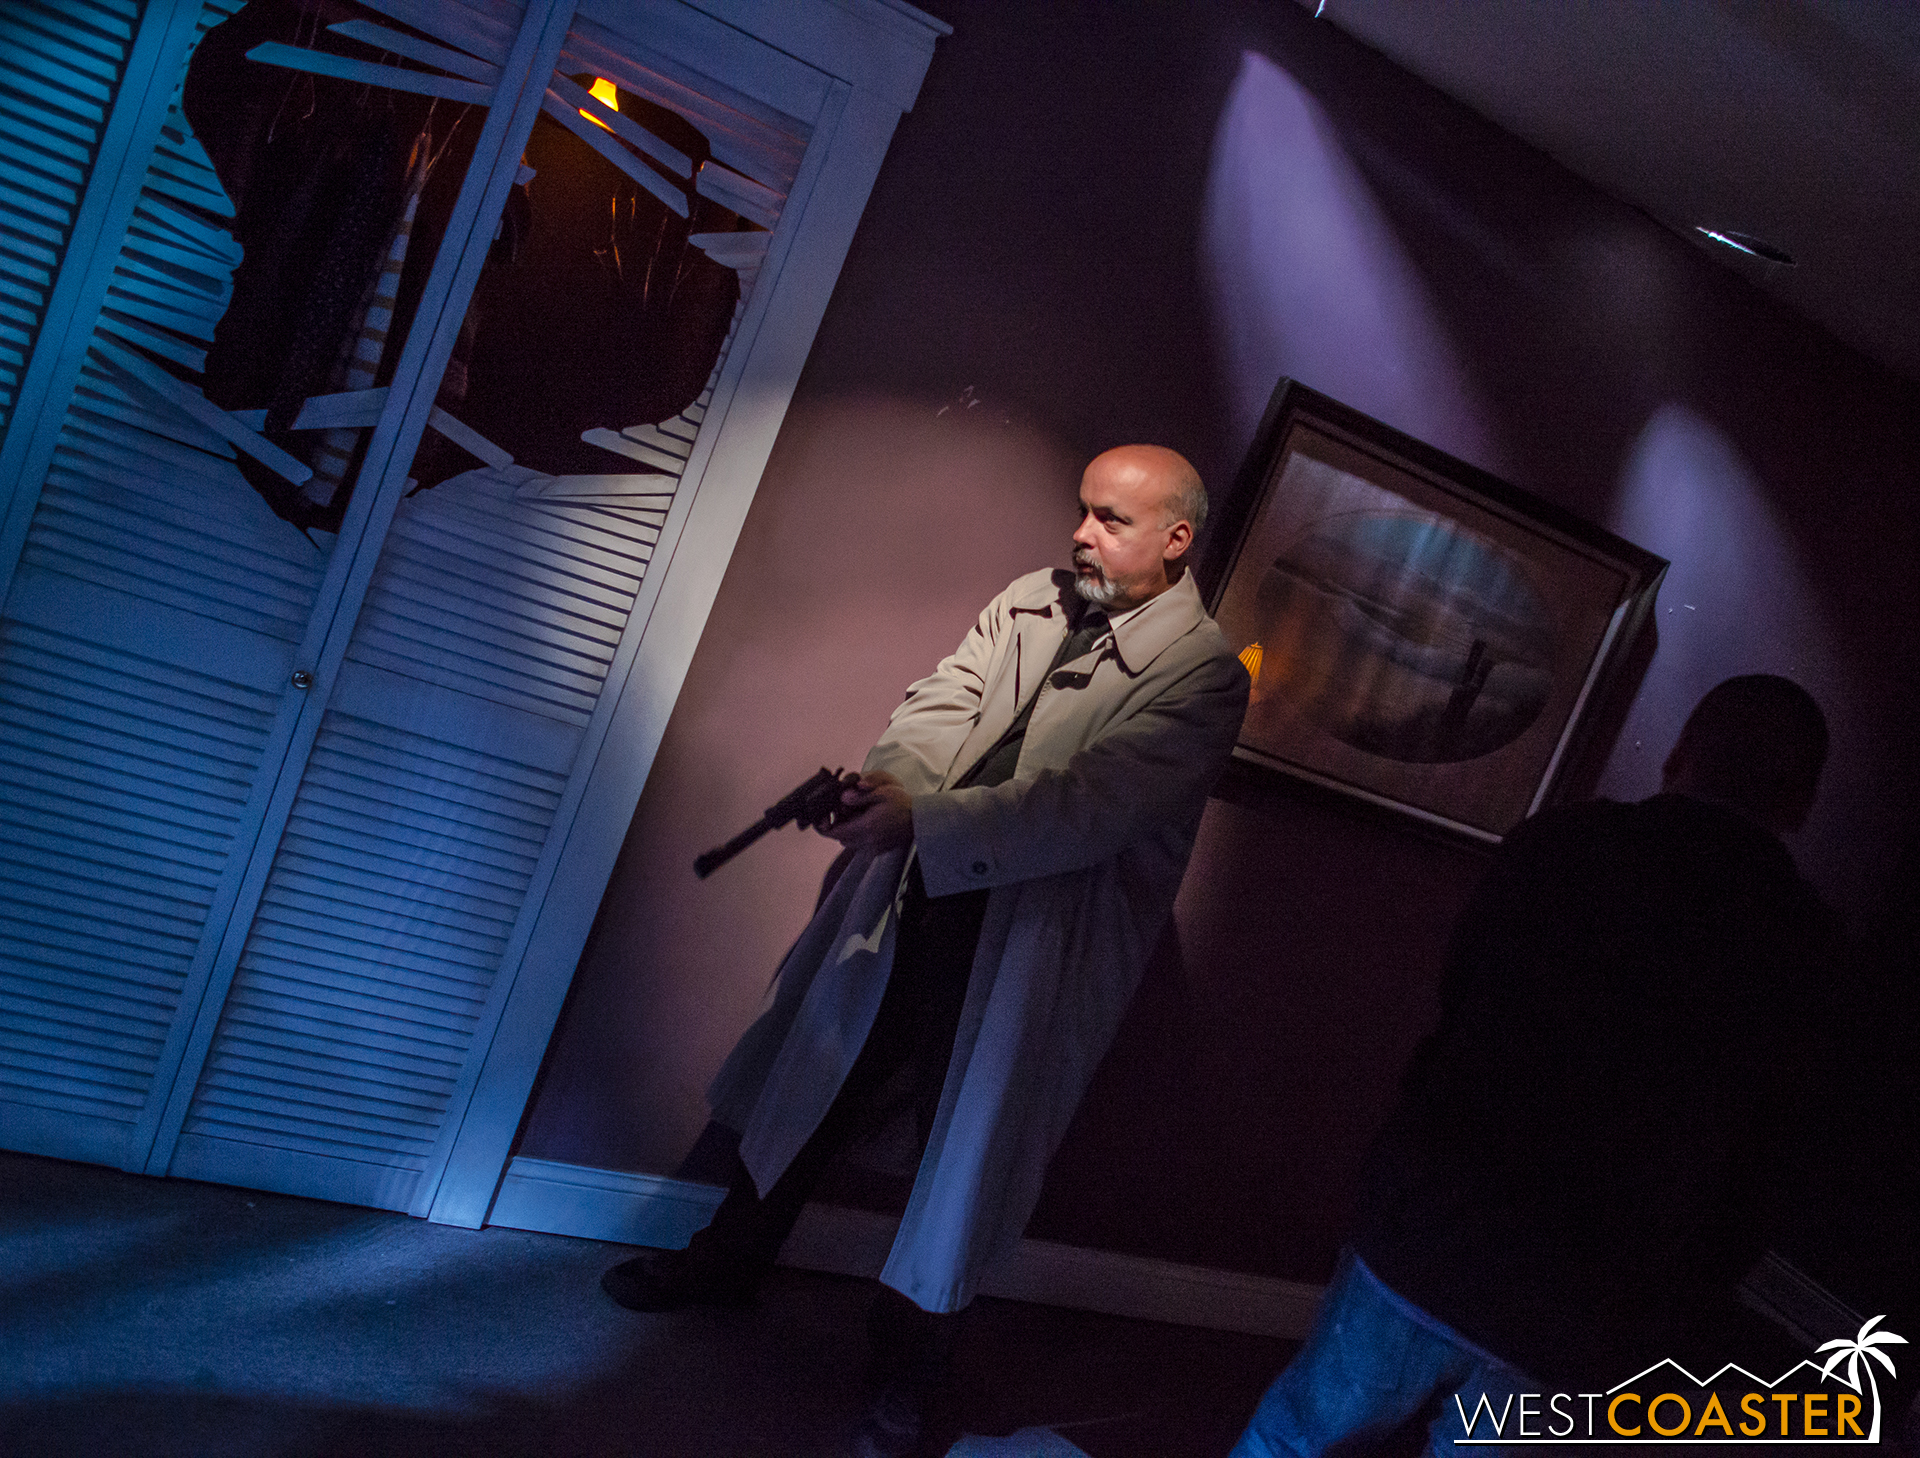 After going through the living room, we come upon Dr. Sam Loomis confronting Michael Myers.